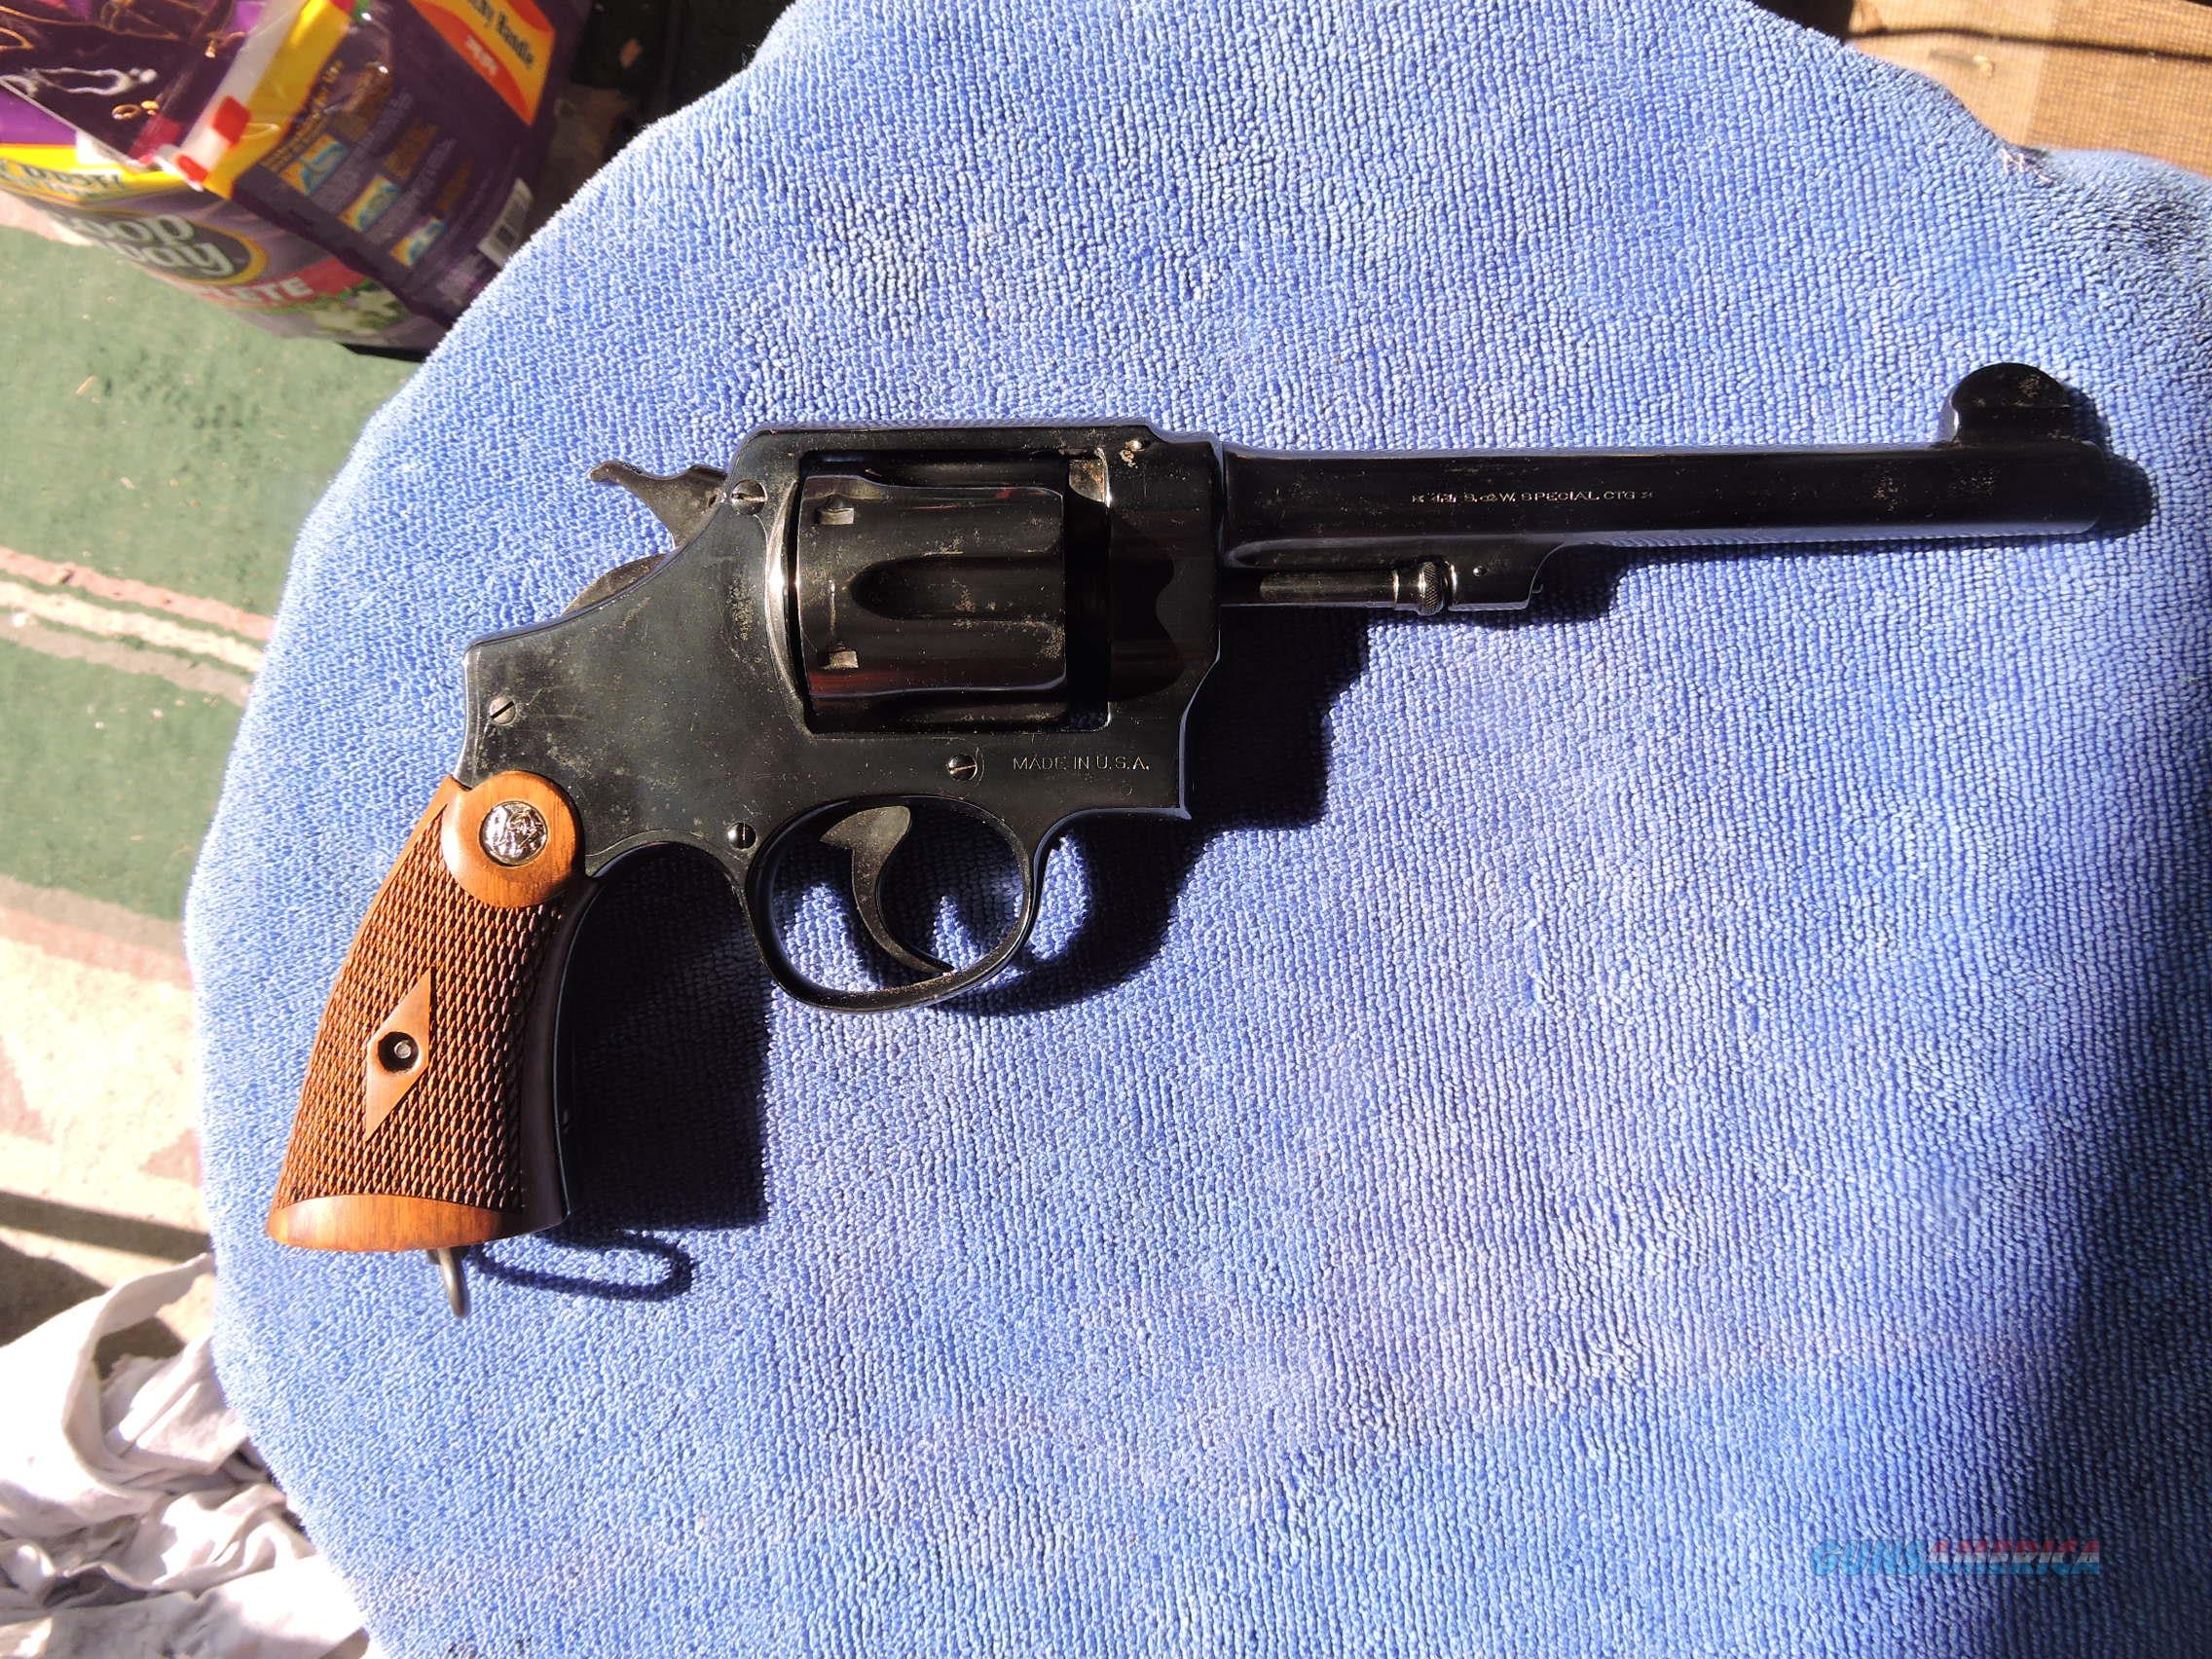 SMITH & WESSON Hand Ejector 2nd Model .44 Special Revolver  Guns > Pistols > Smith & Wesson Revolvers > Full Frame Revolver